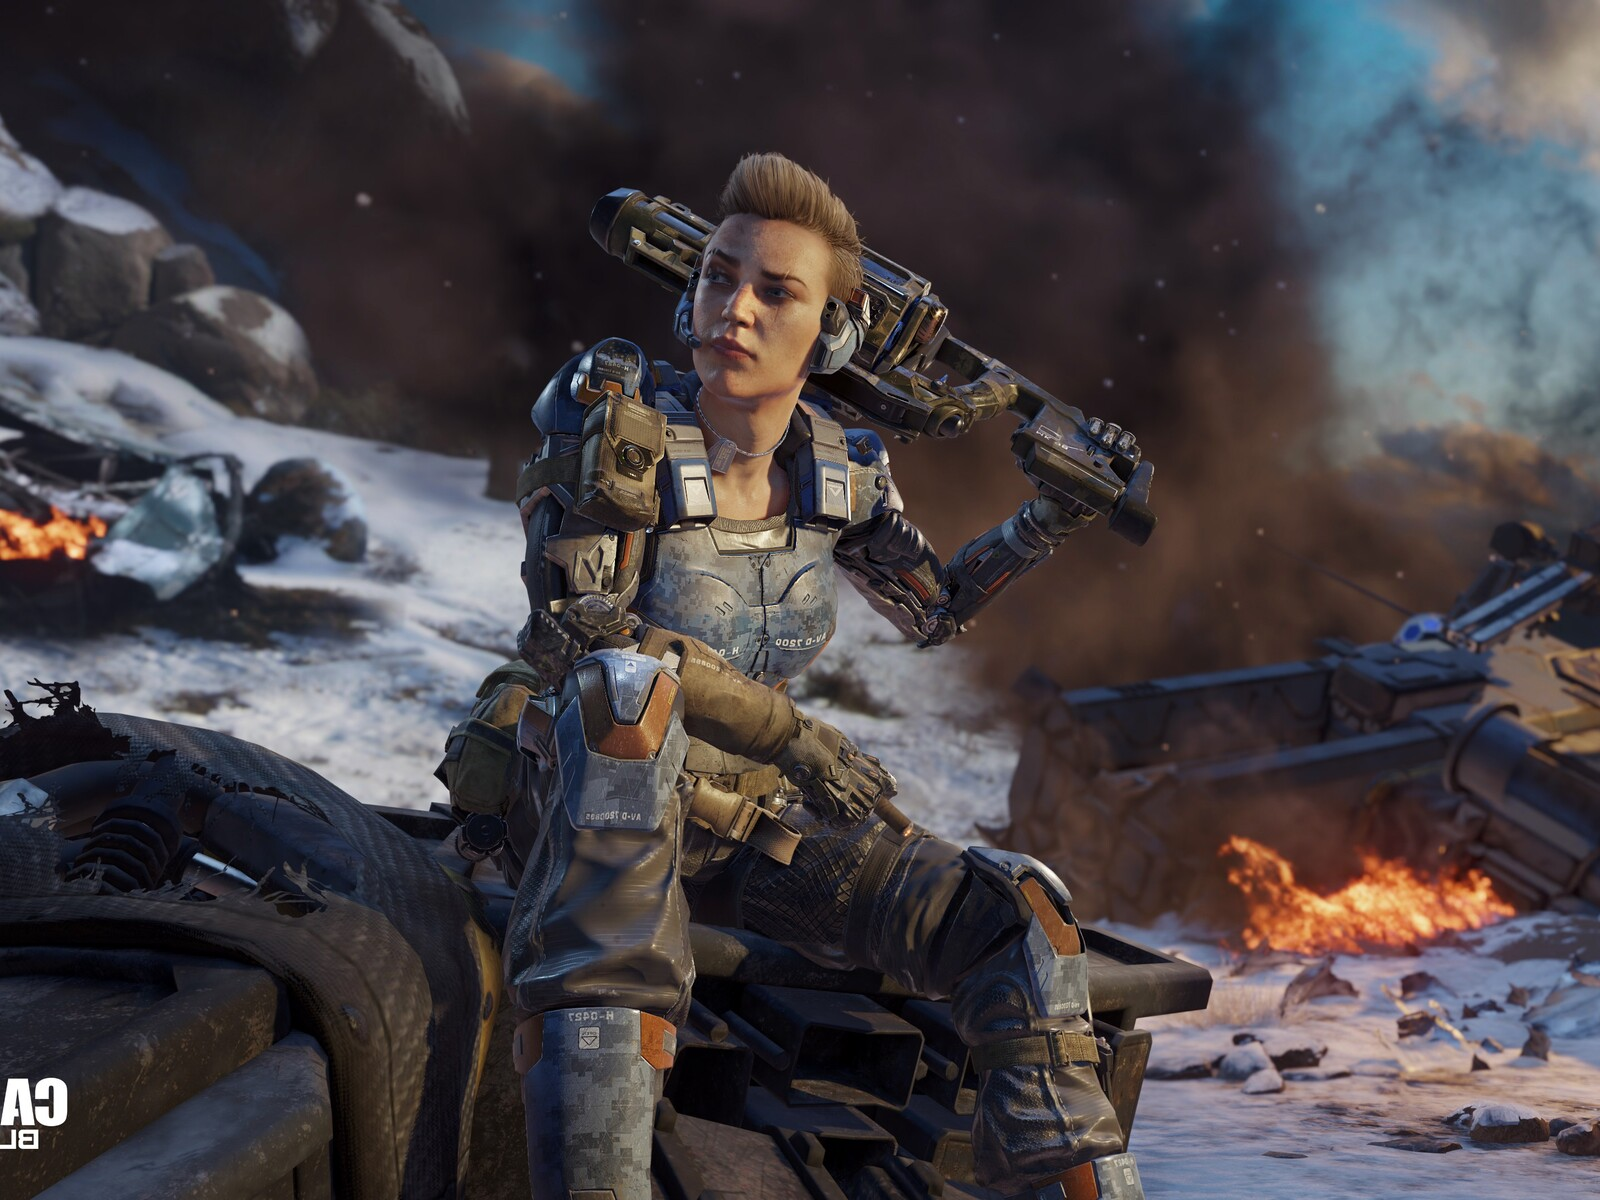 1600x1200 Call Of Duty Black Ops 3 Game 1600x1200 Resolution Hd 4k